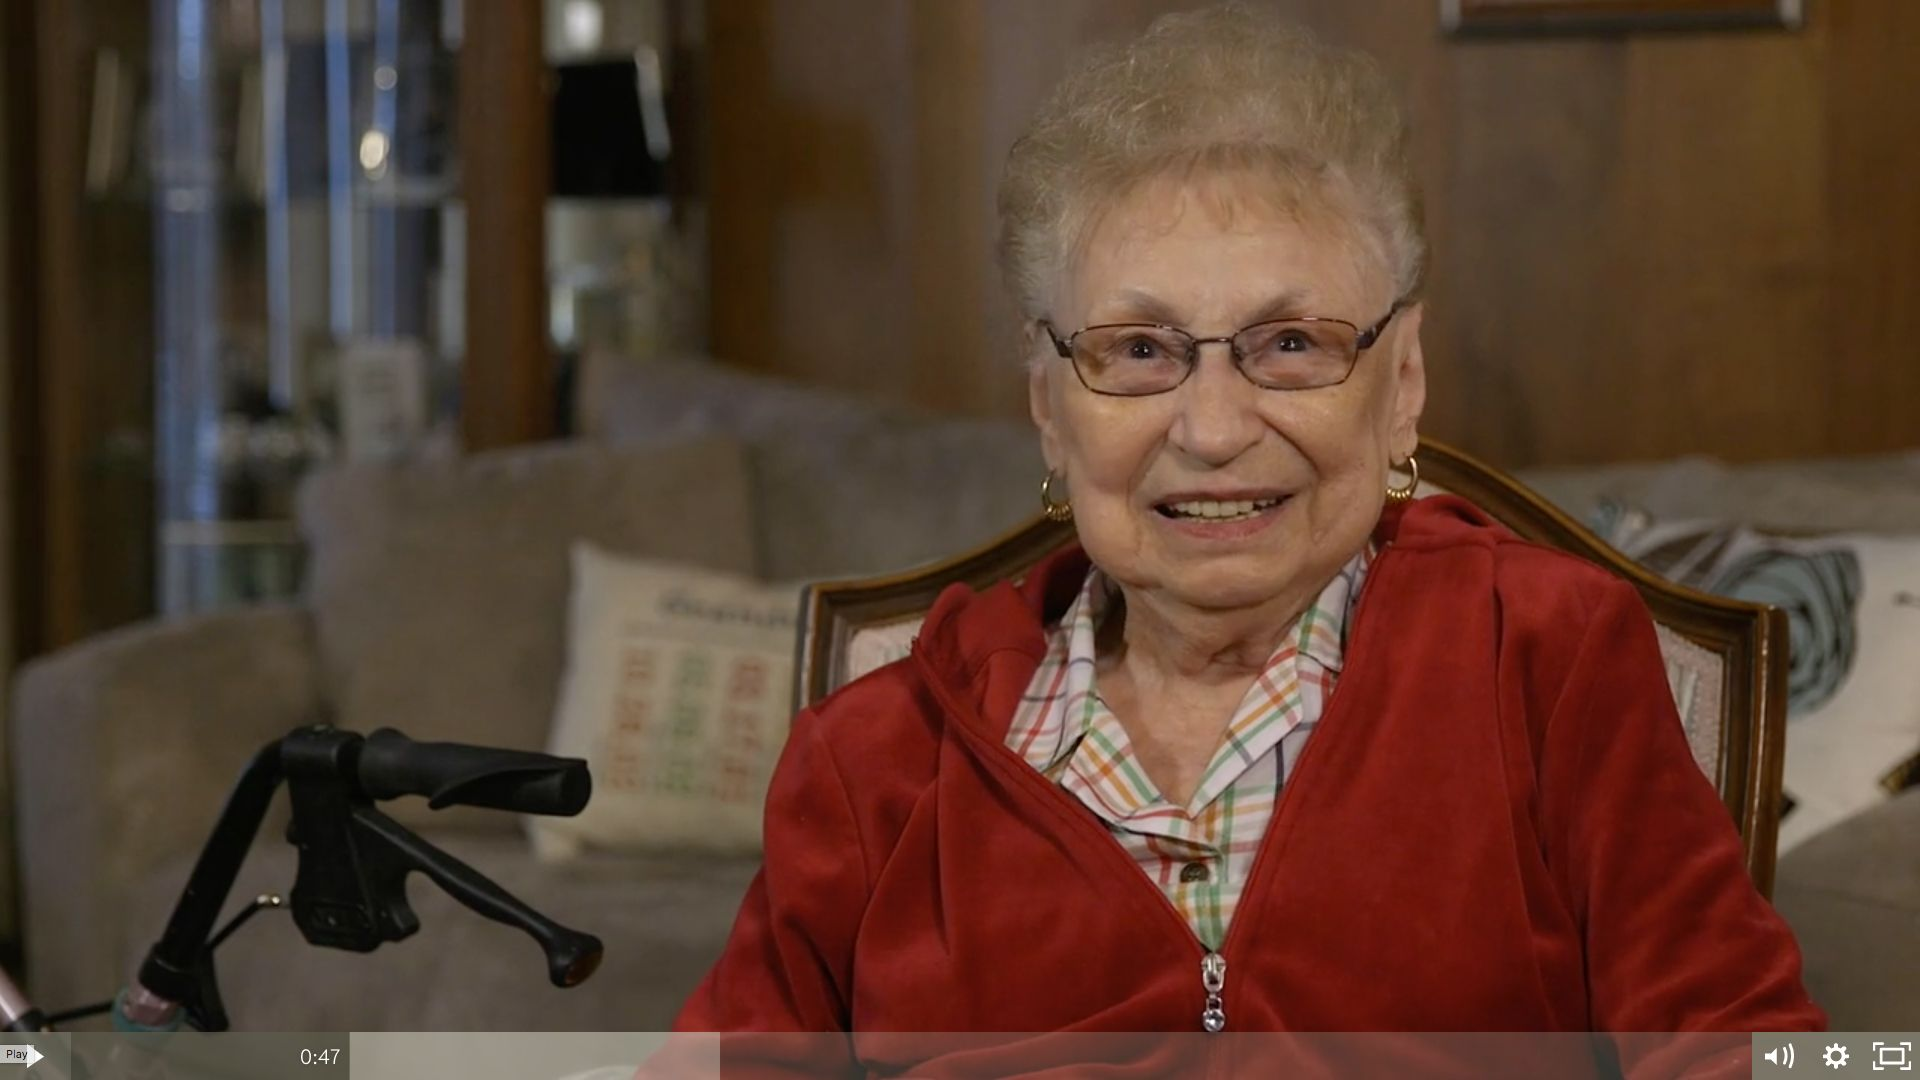 Esther Begam was 11 years old when Nazis invaded her native Poland and separated her from her family.